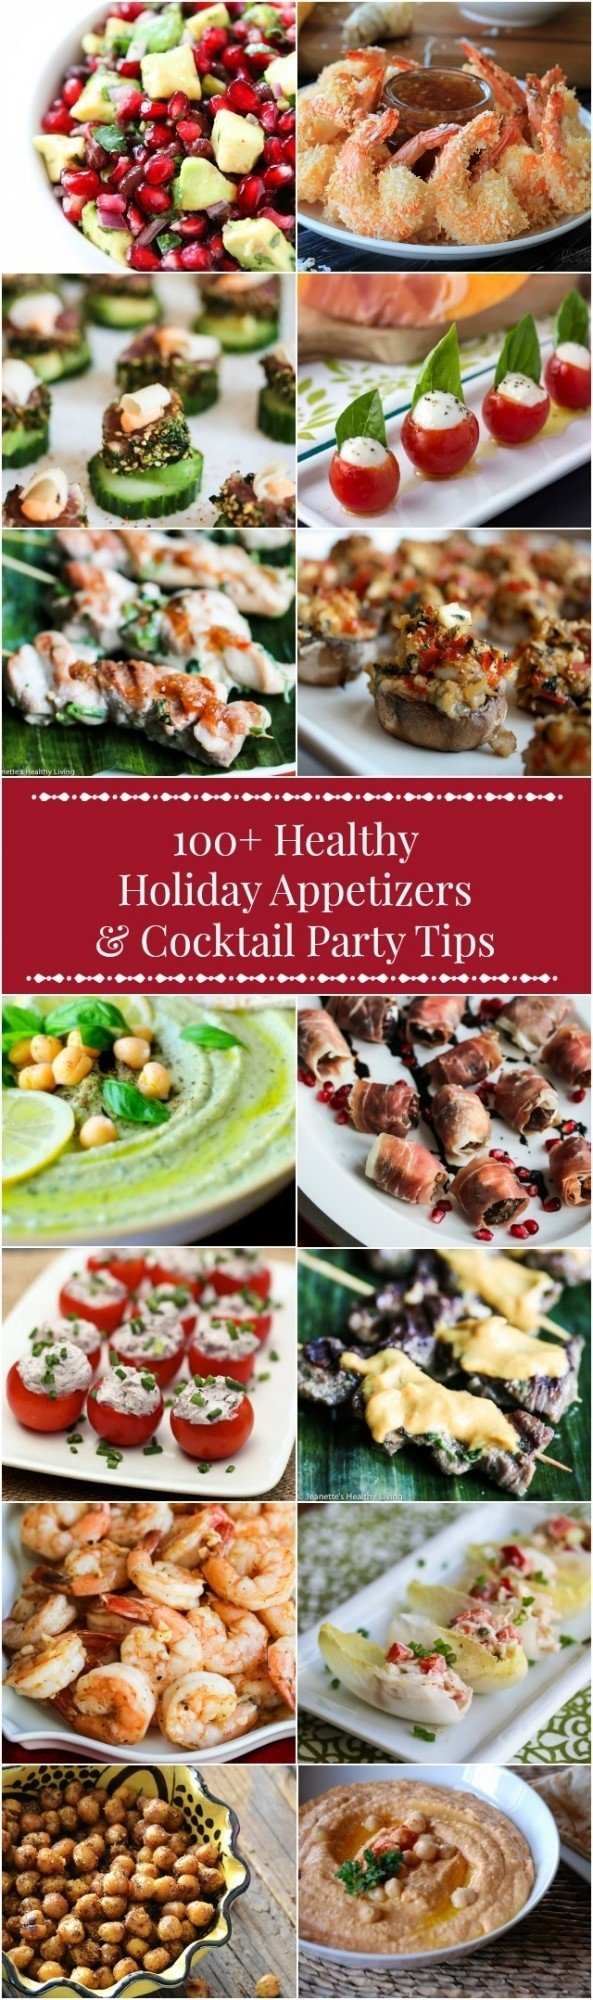 100+ healthy holiday appetizer recipes + cocktail party menu